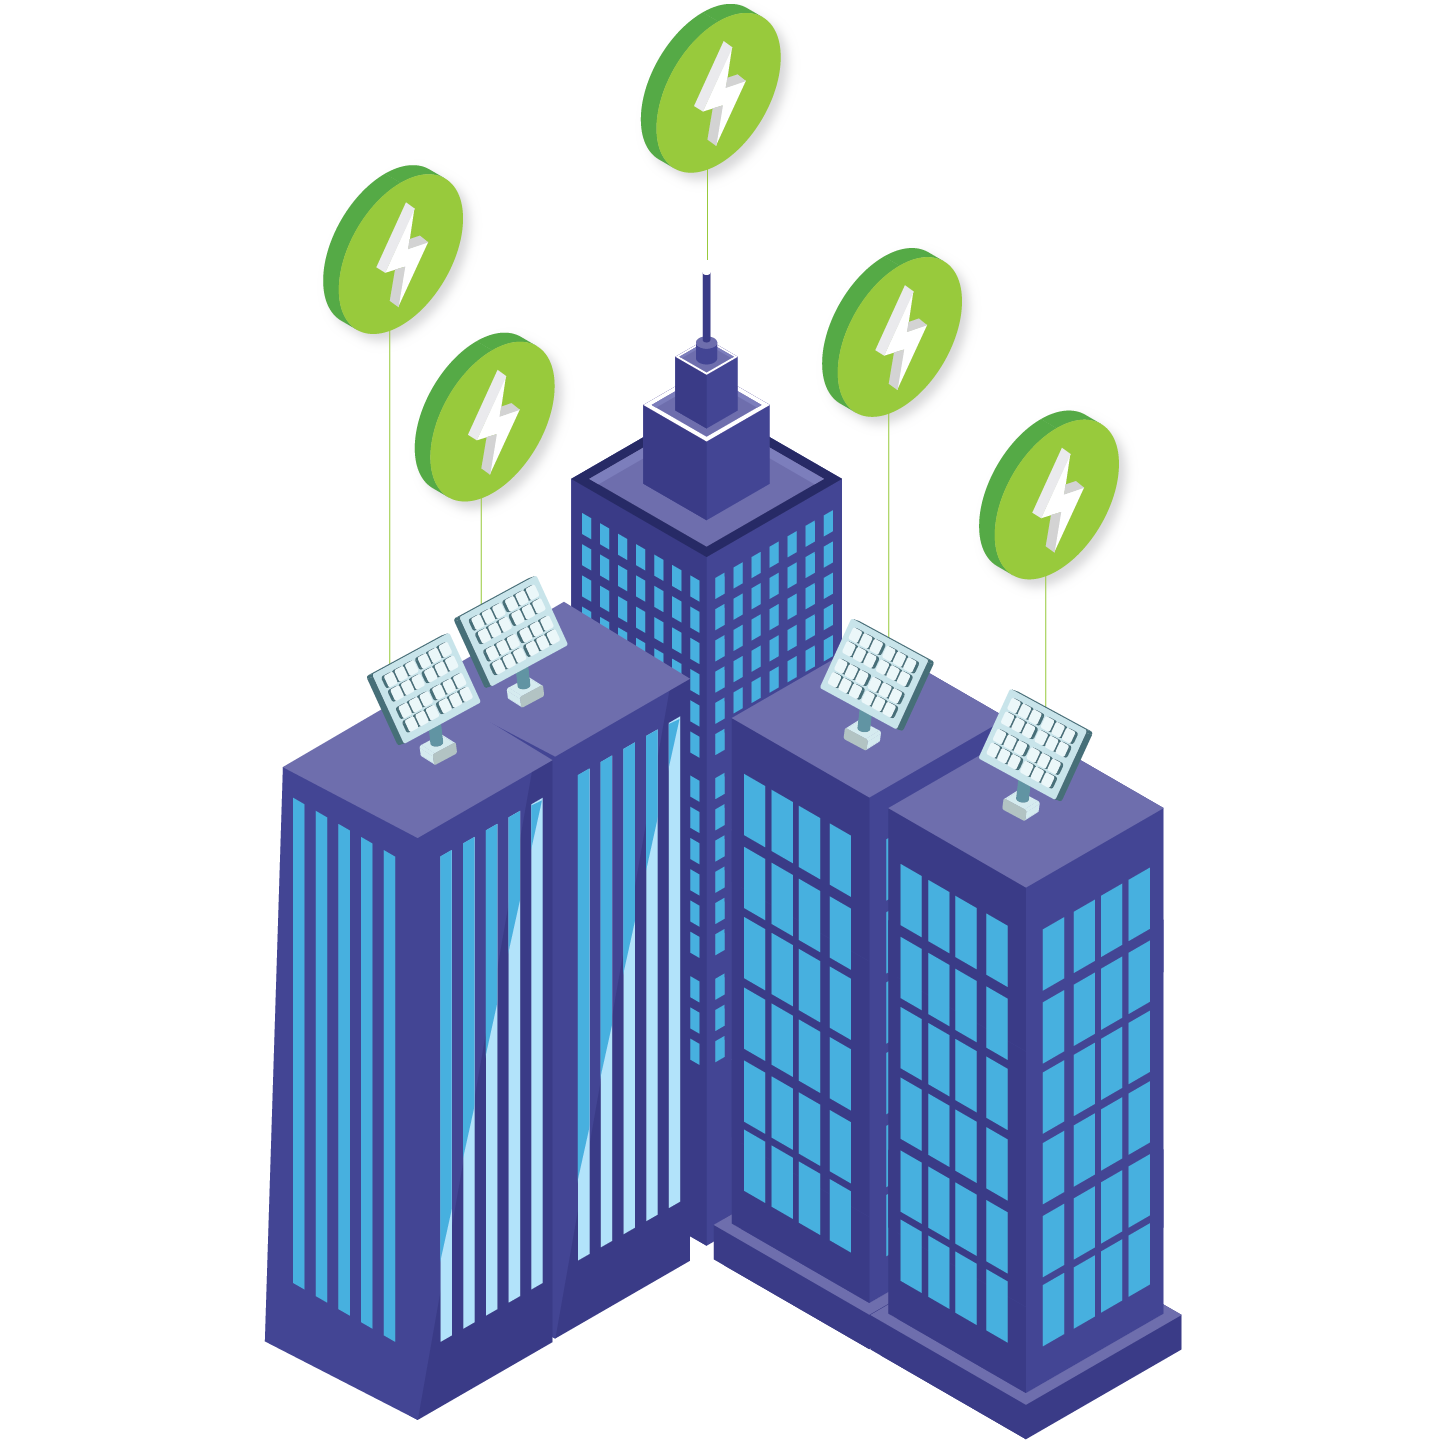 resync smart buildings